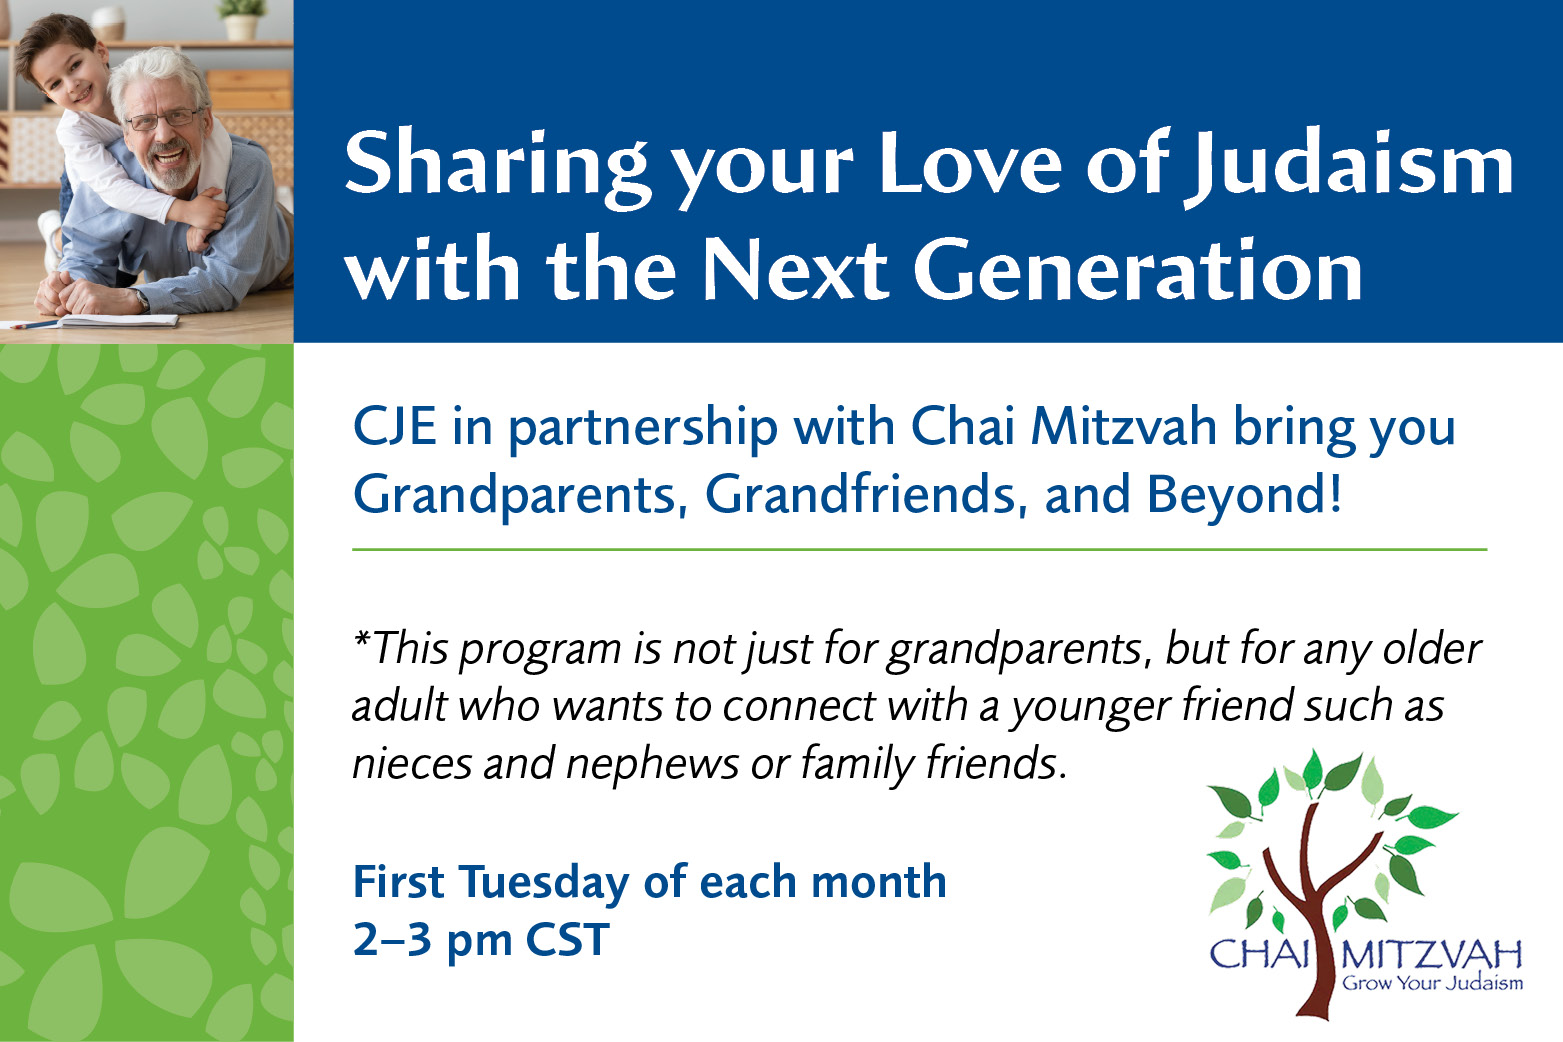 Grandparents, Grandfriends, and Beyond!